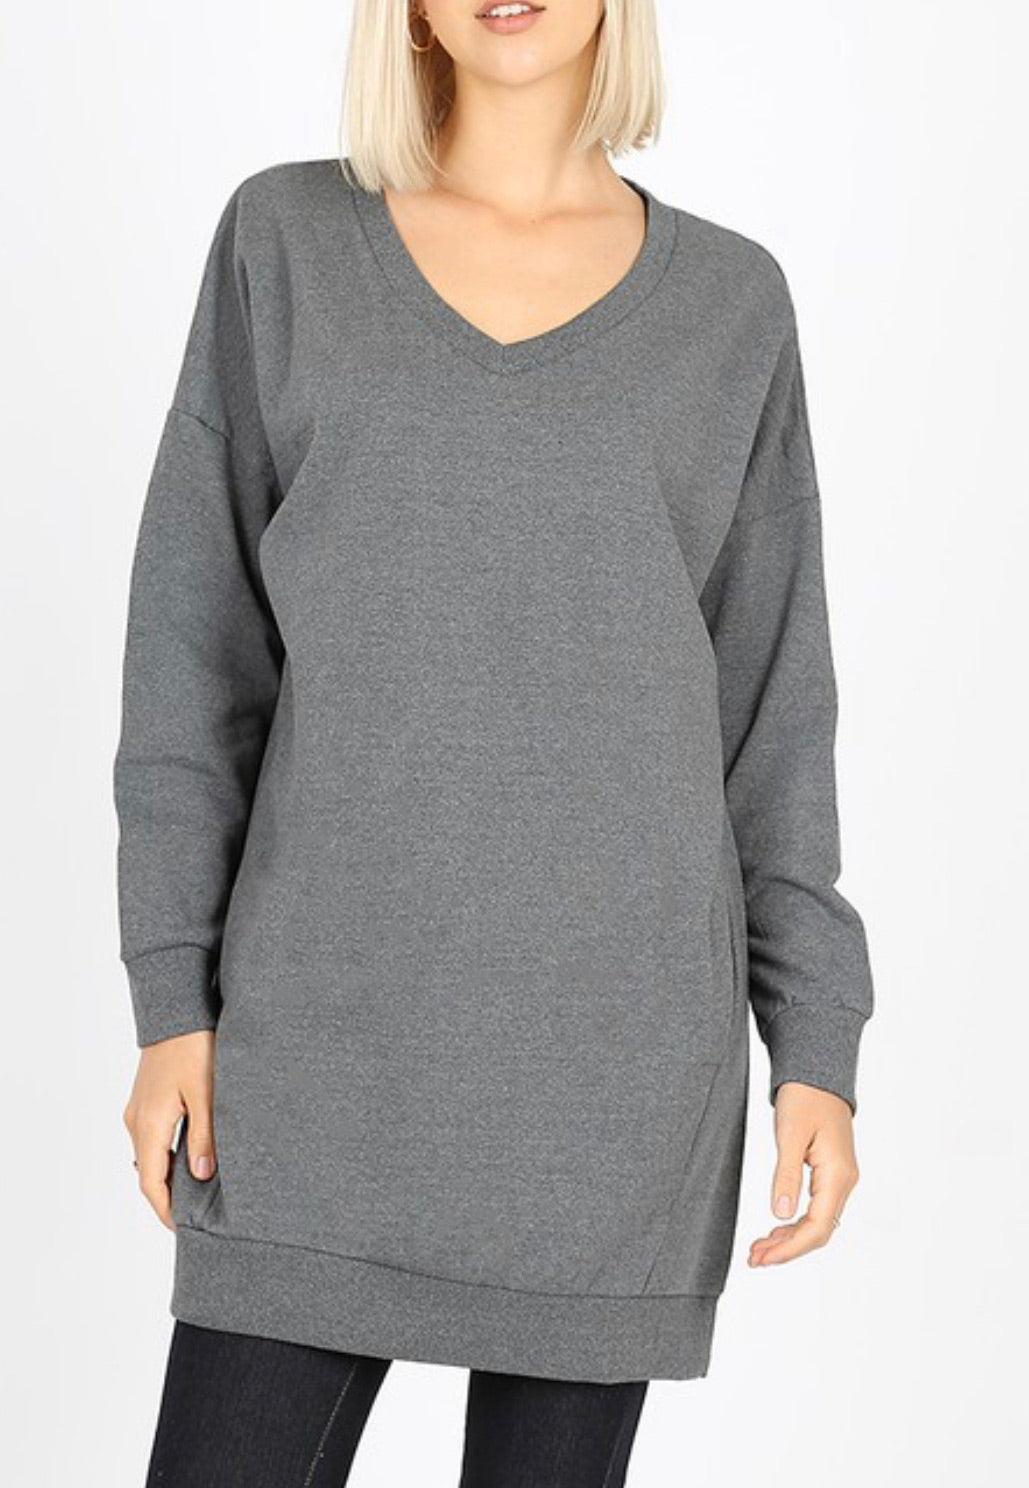 Long Comfy and Casual V- Neck Tunic Sweatshirt (Grey)*